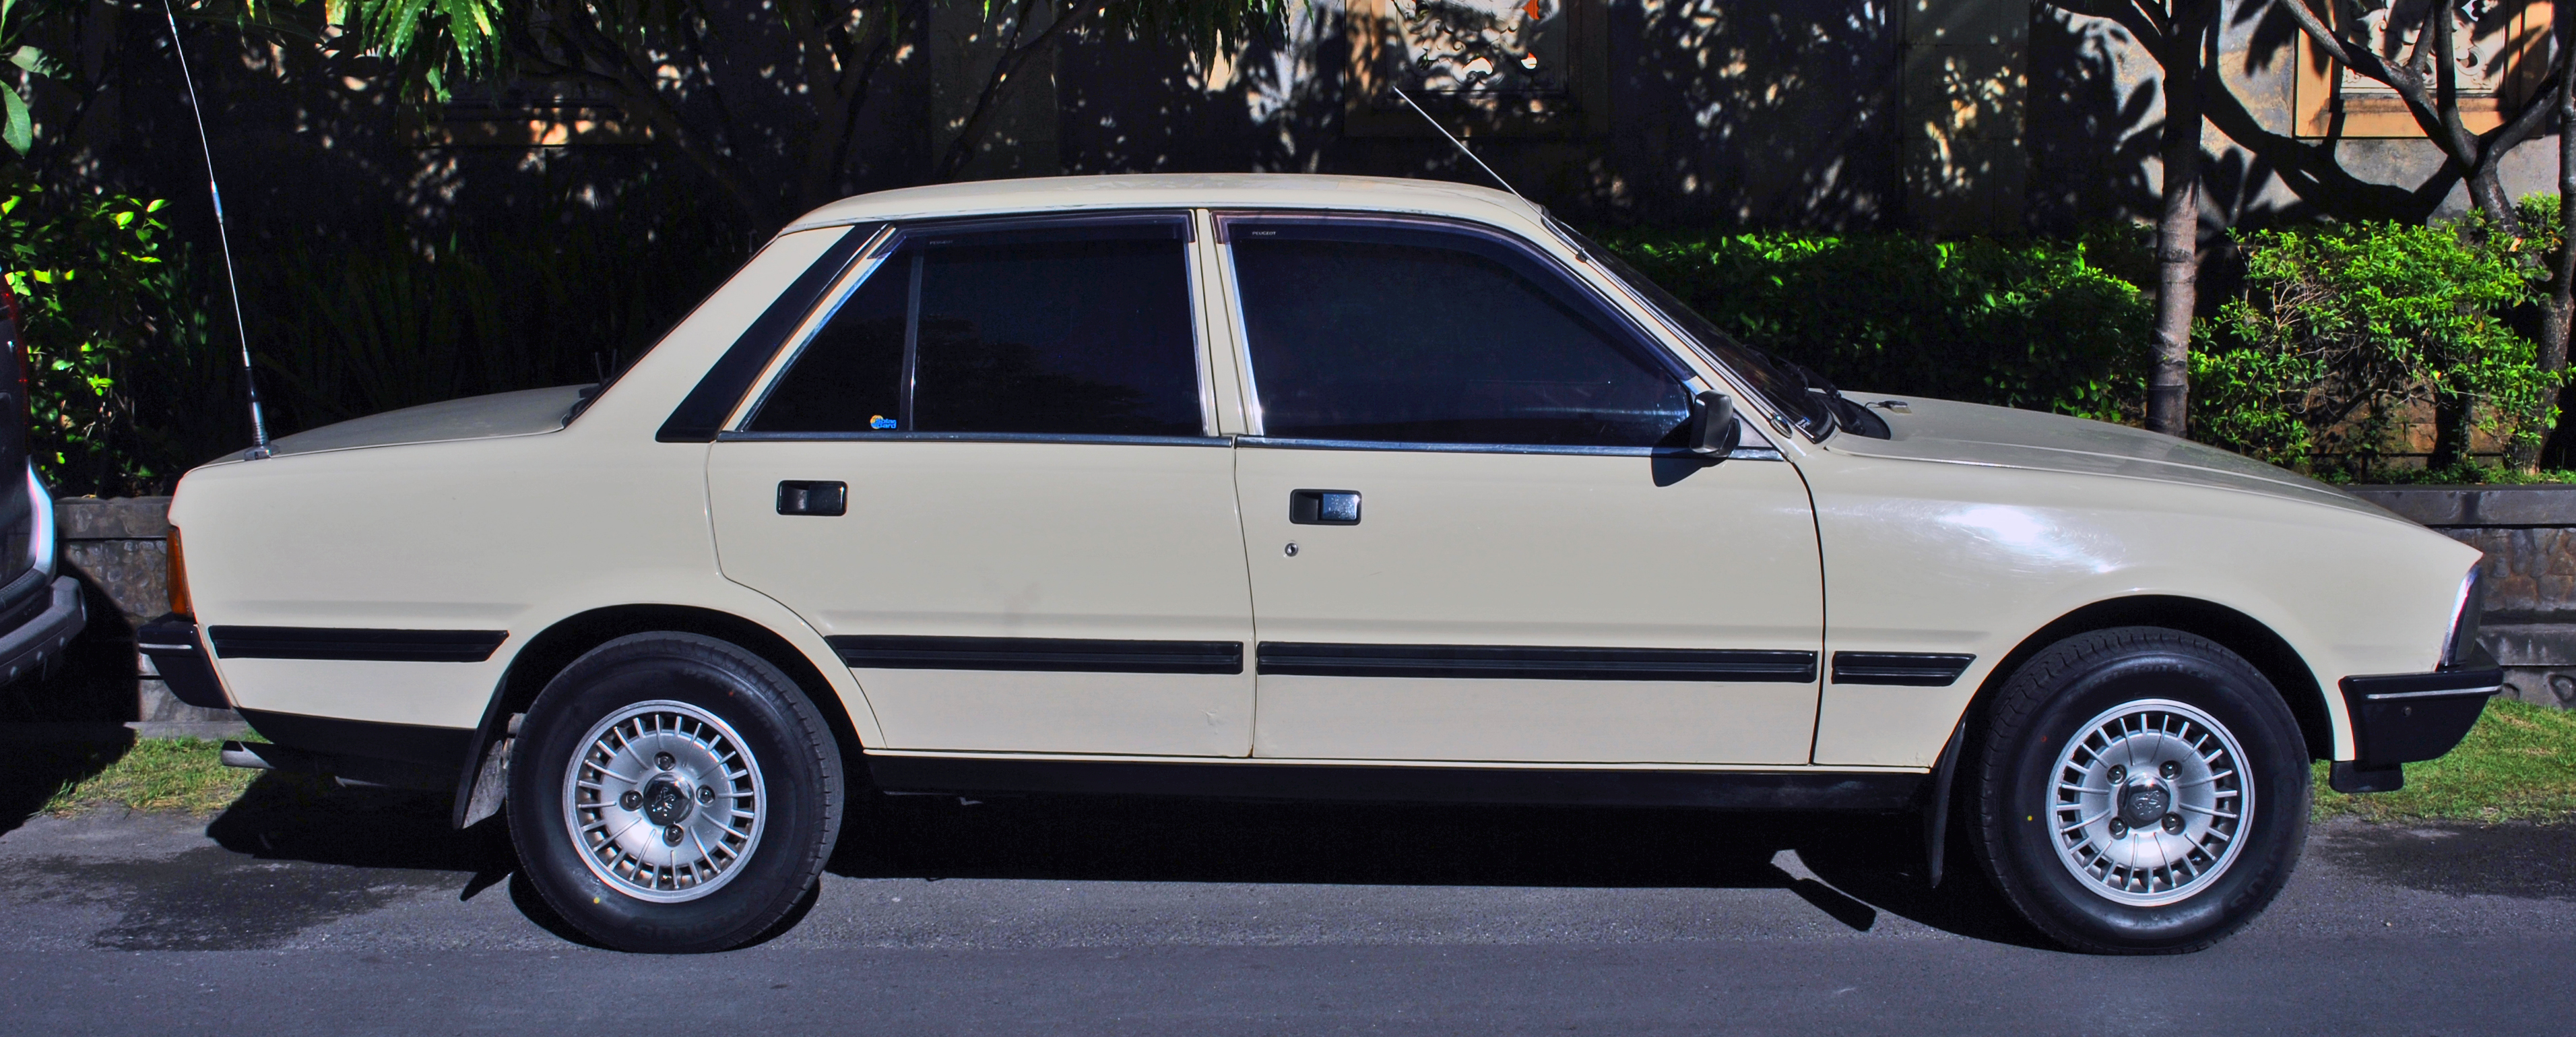 file:peugeot 505 gr profile, denpasar - wikimedia commons